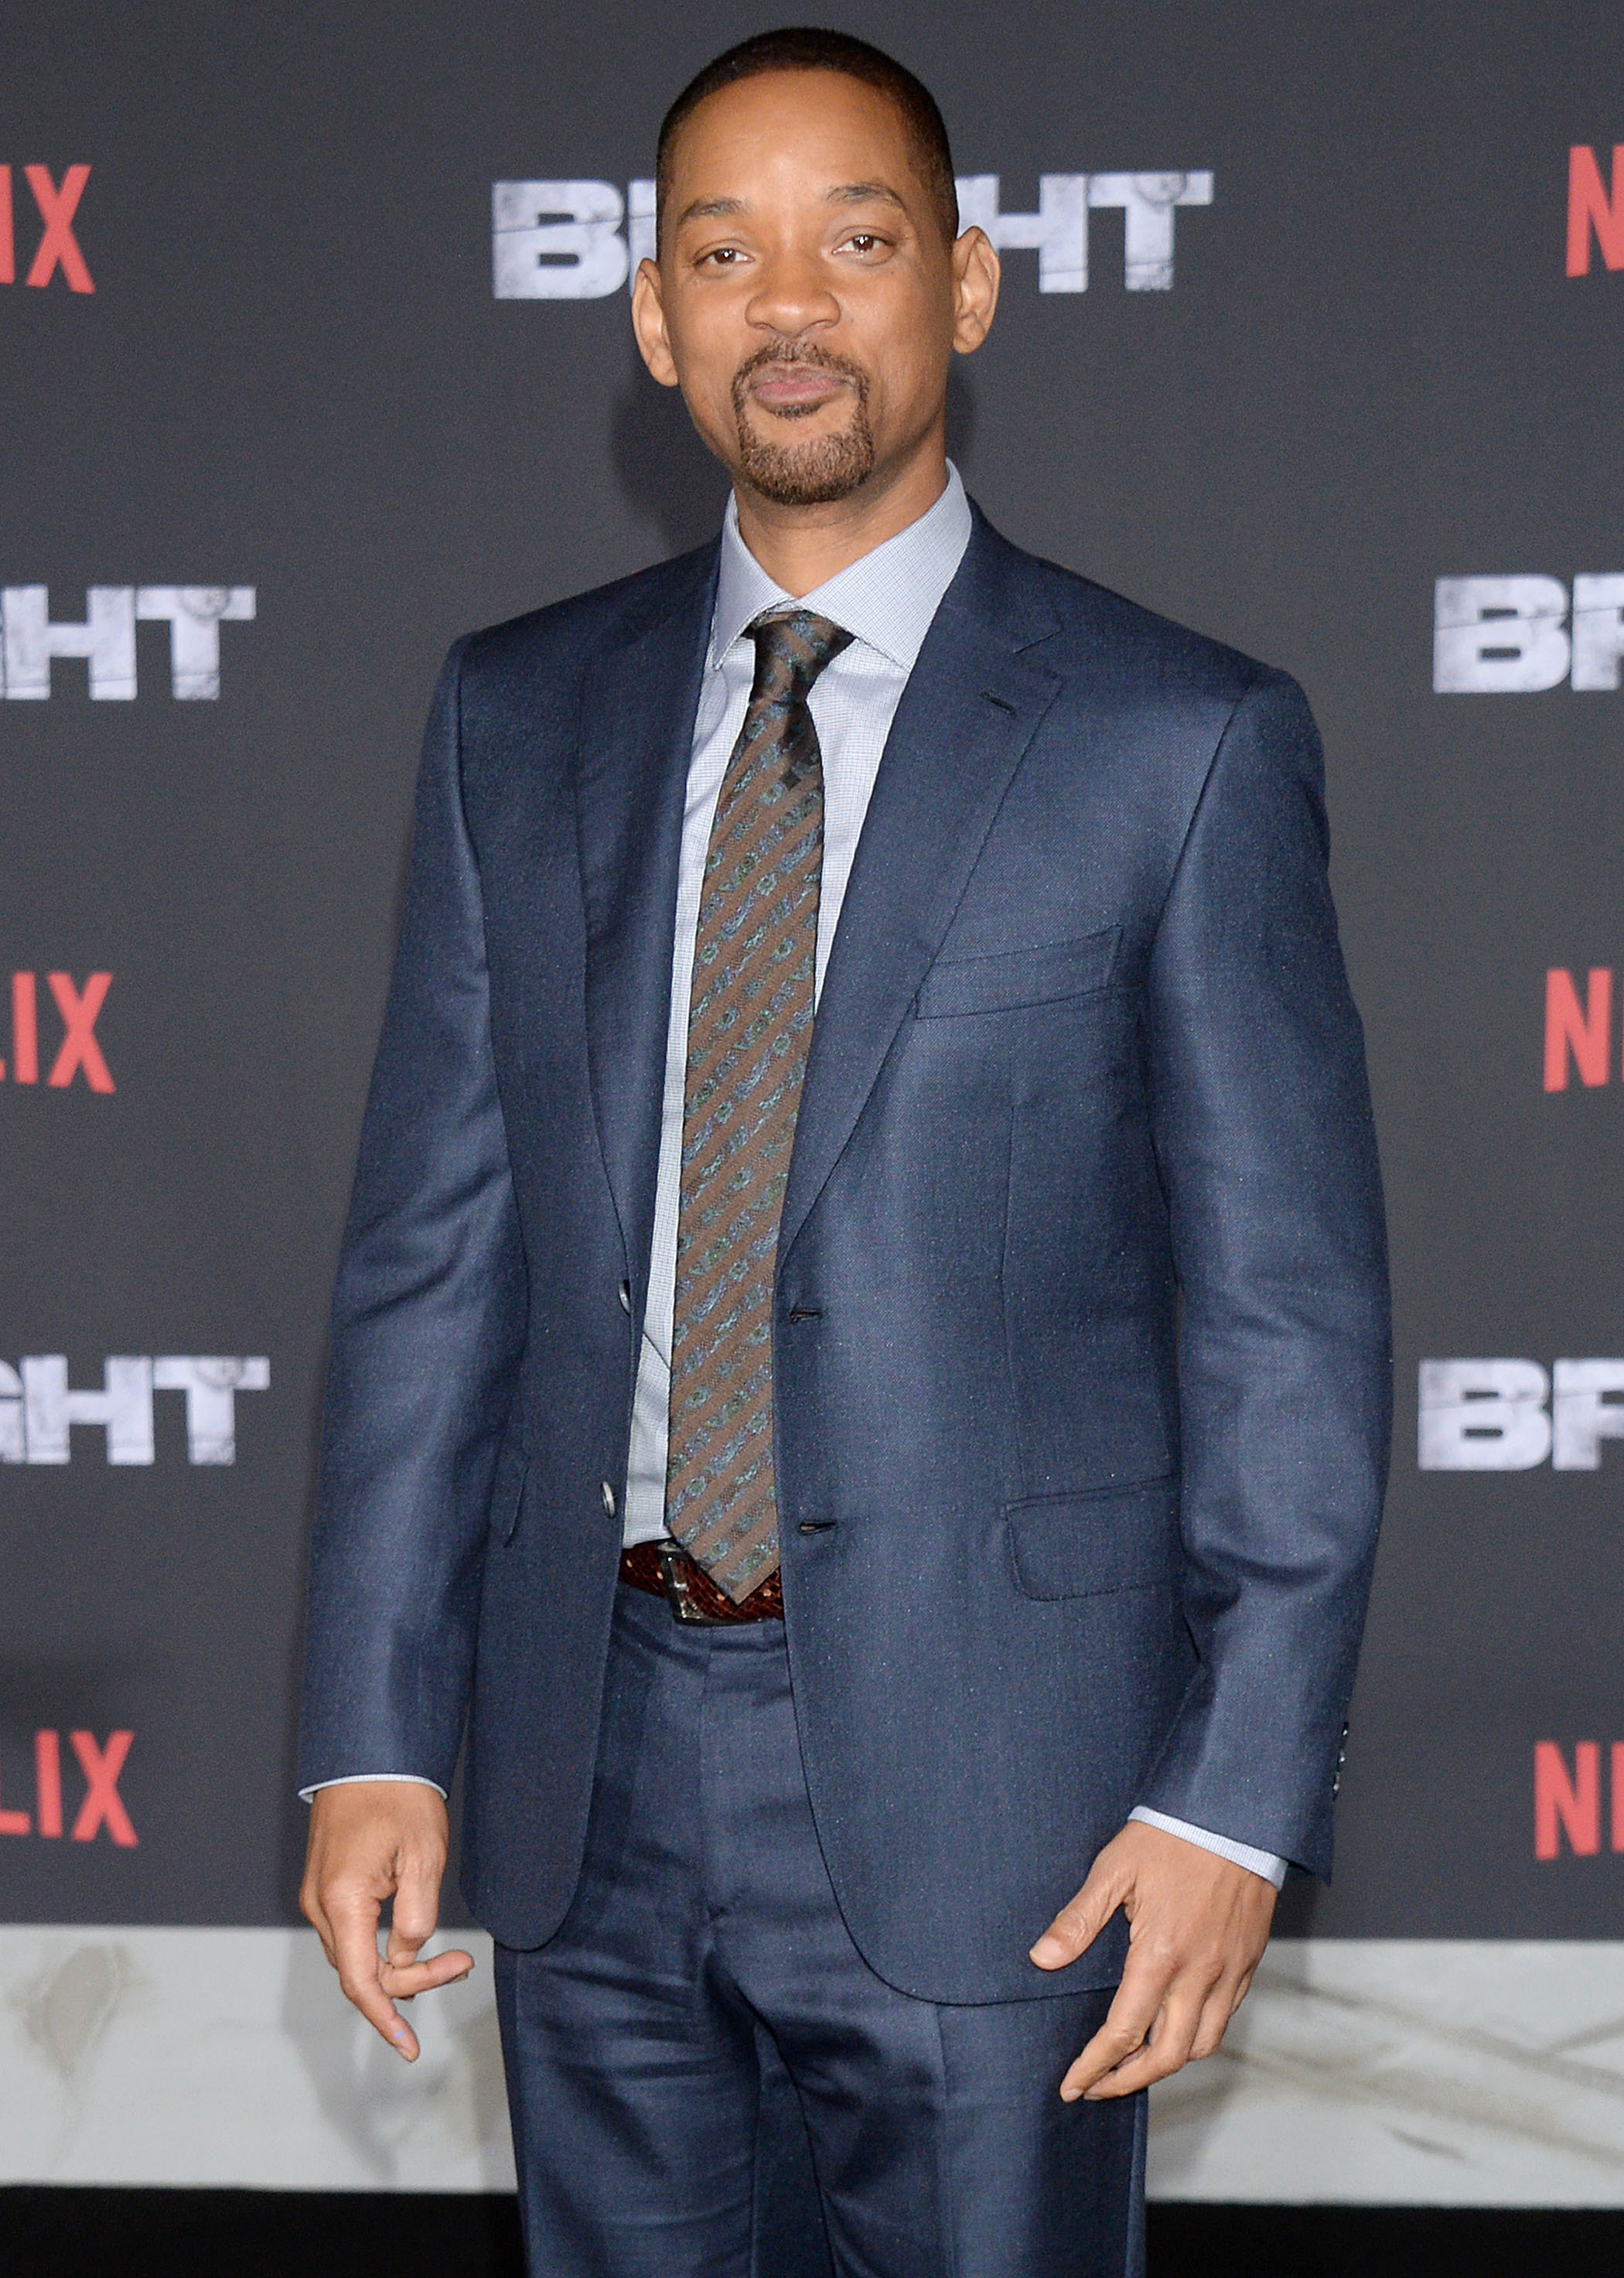 """Will Smith attends the premiere of """"Bright"""" in Los Angeles on Dec. 16, 2017."""